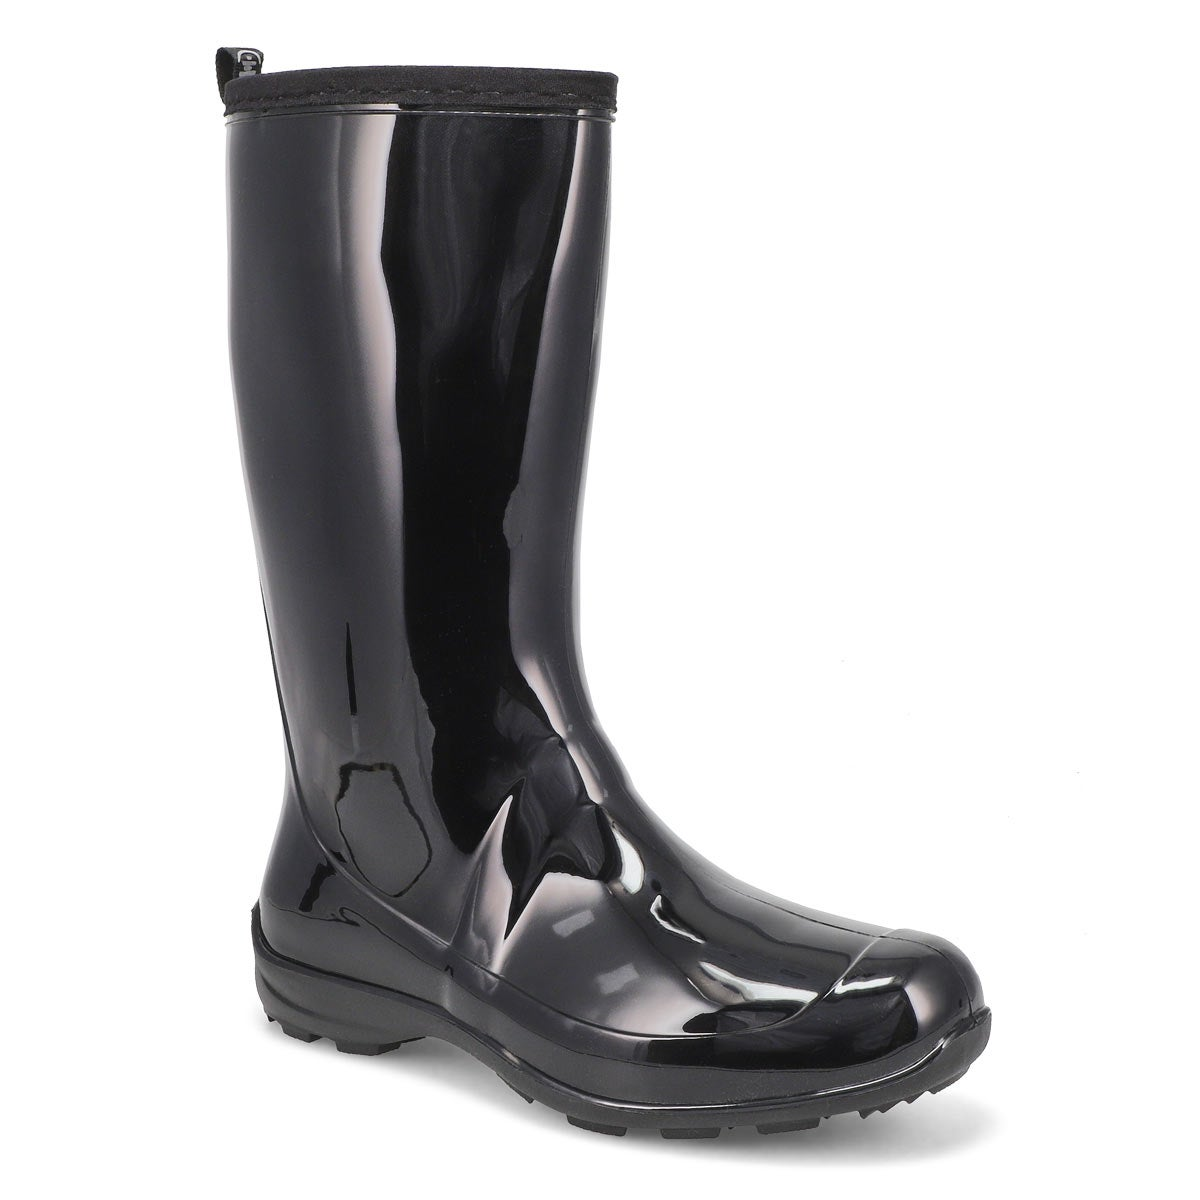 Women's HEIDI black mid waterproof rain boots